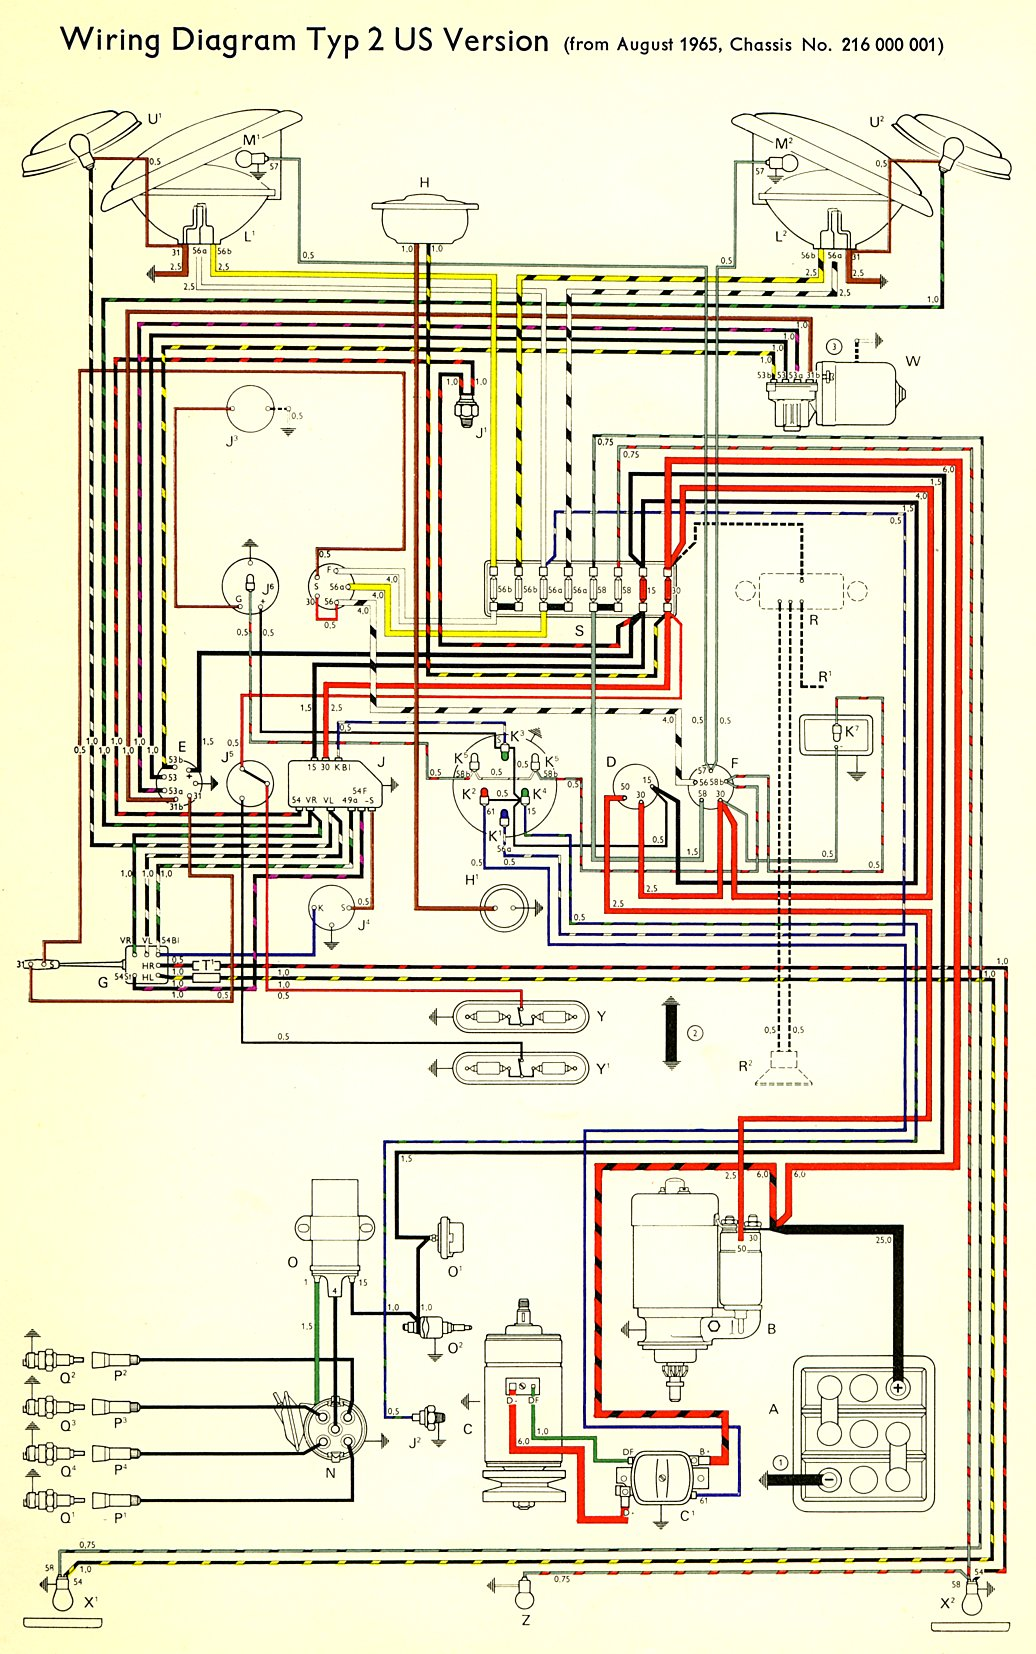 bus_66_USA 1966 bus wiring diagram (usa) thegoldenbug com vw wiring diagrams at readyjetset.co